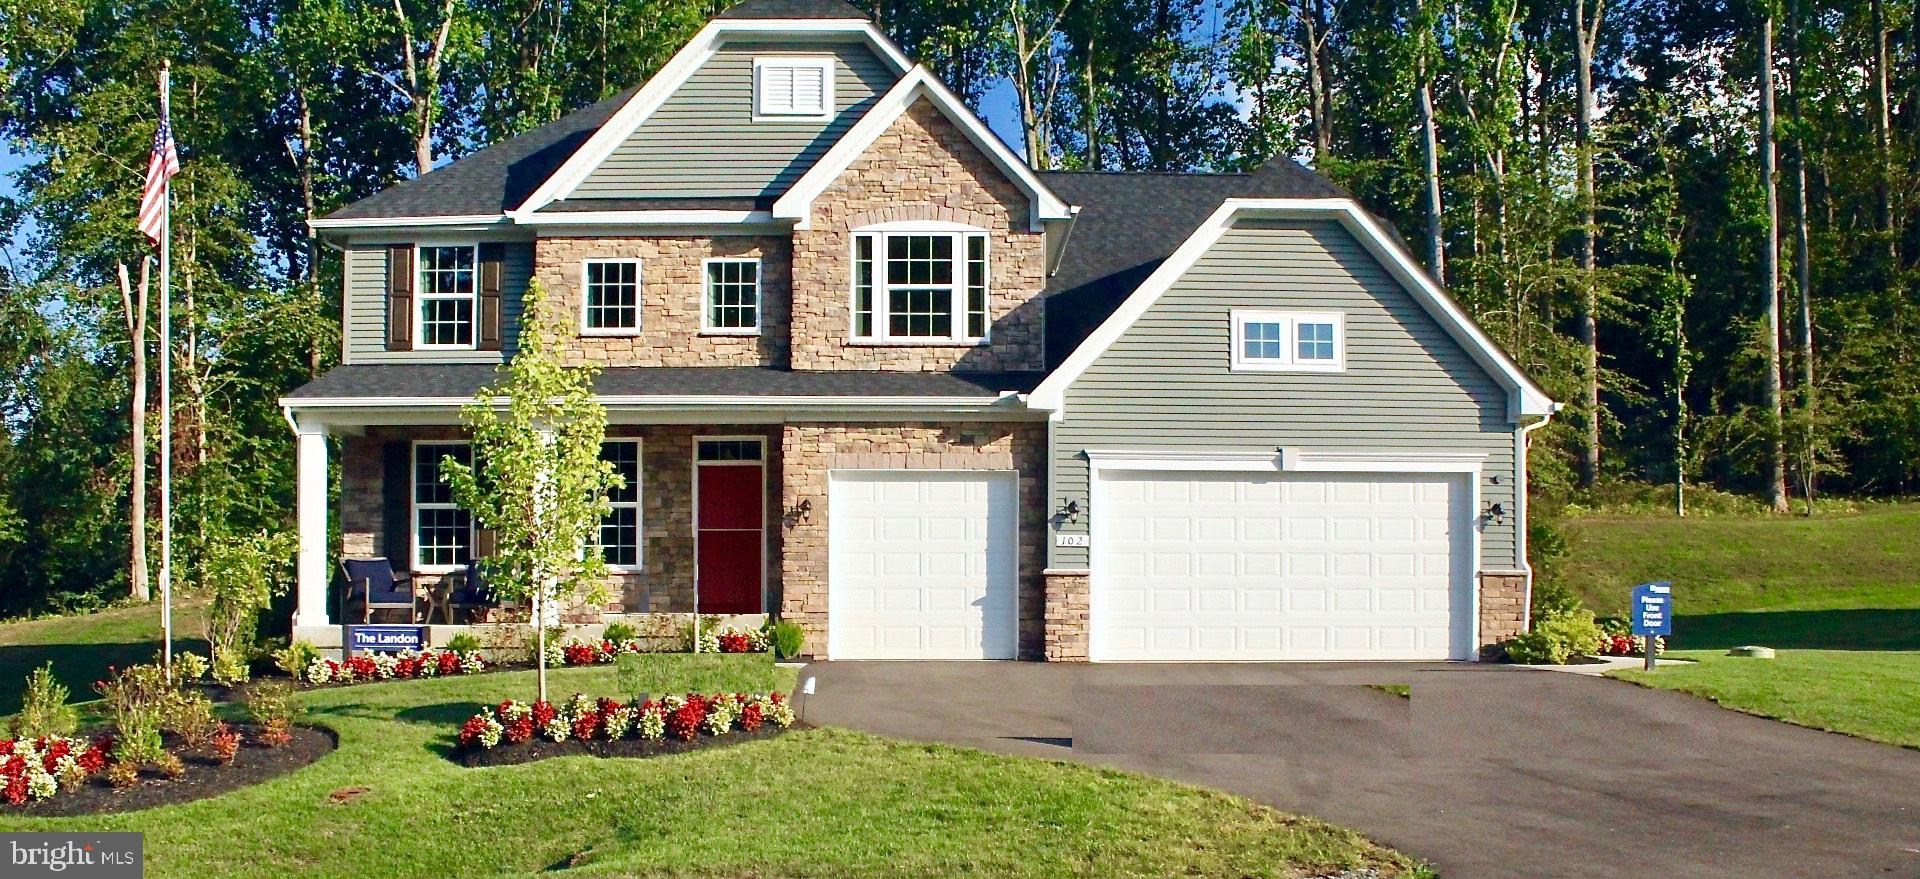 102 ROWANS CREEK LANE, STAFFORD, VA 22556